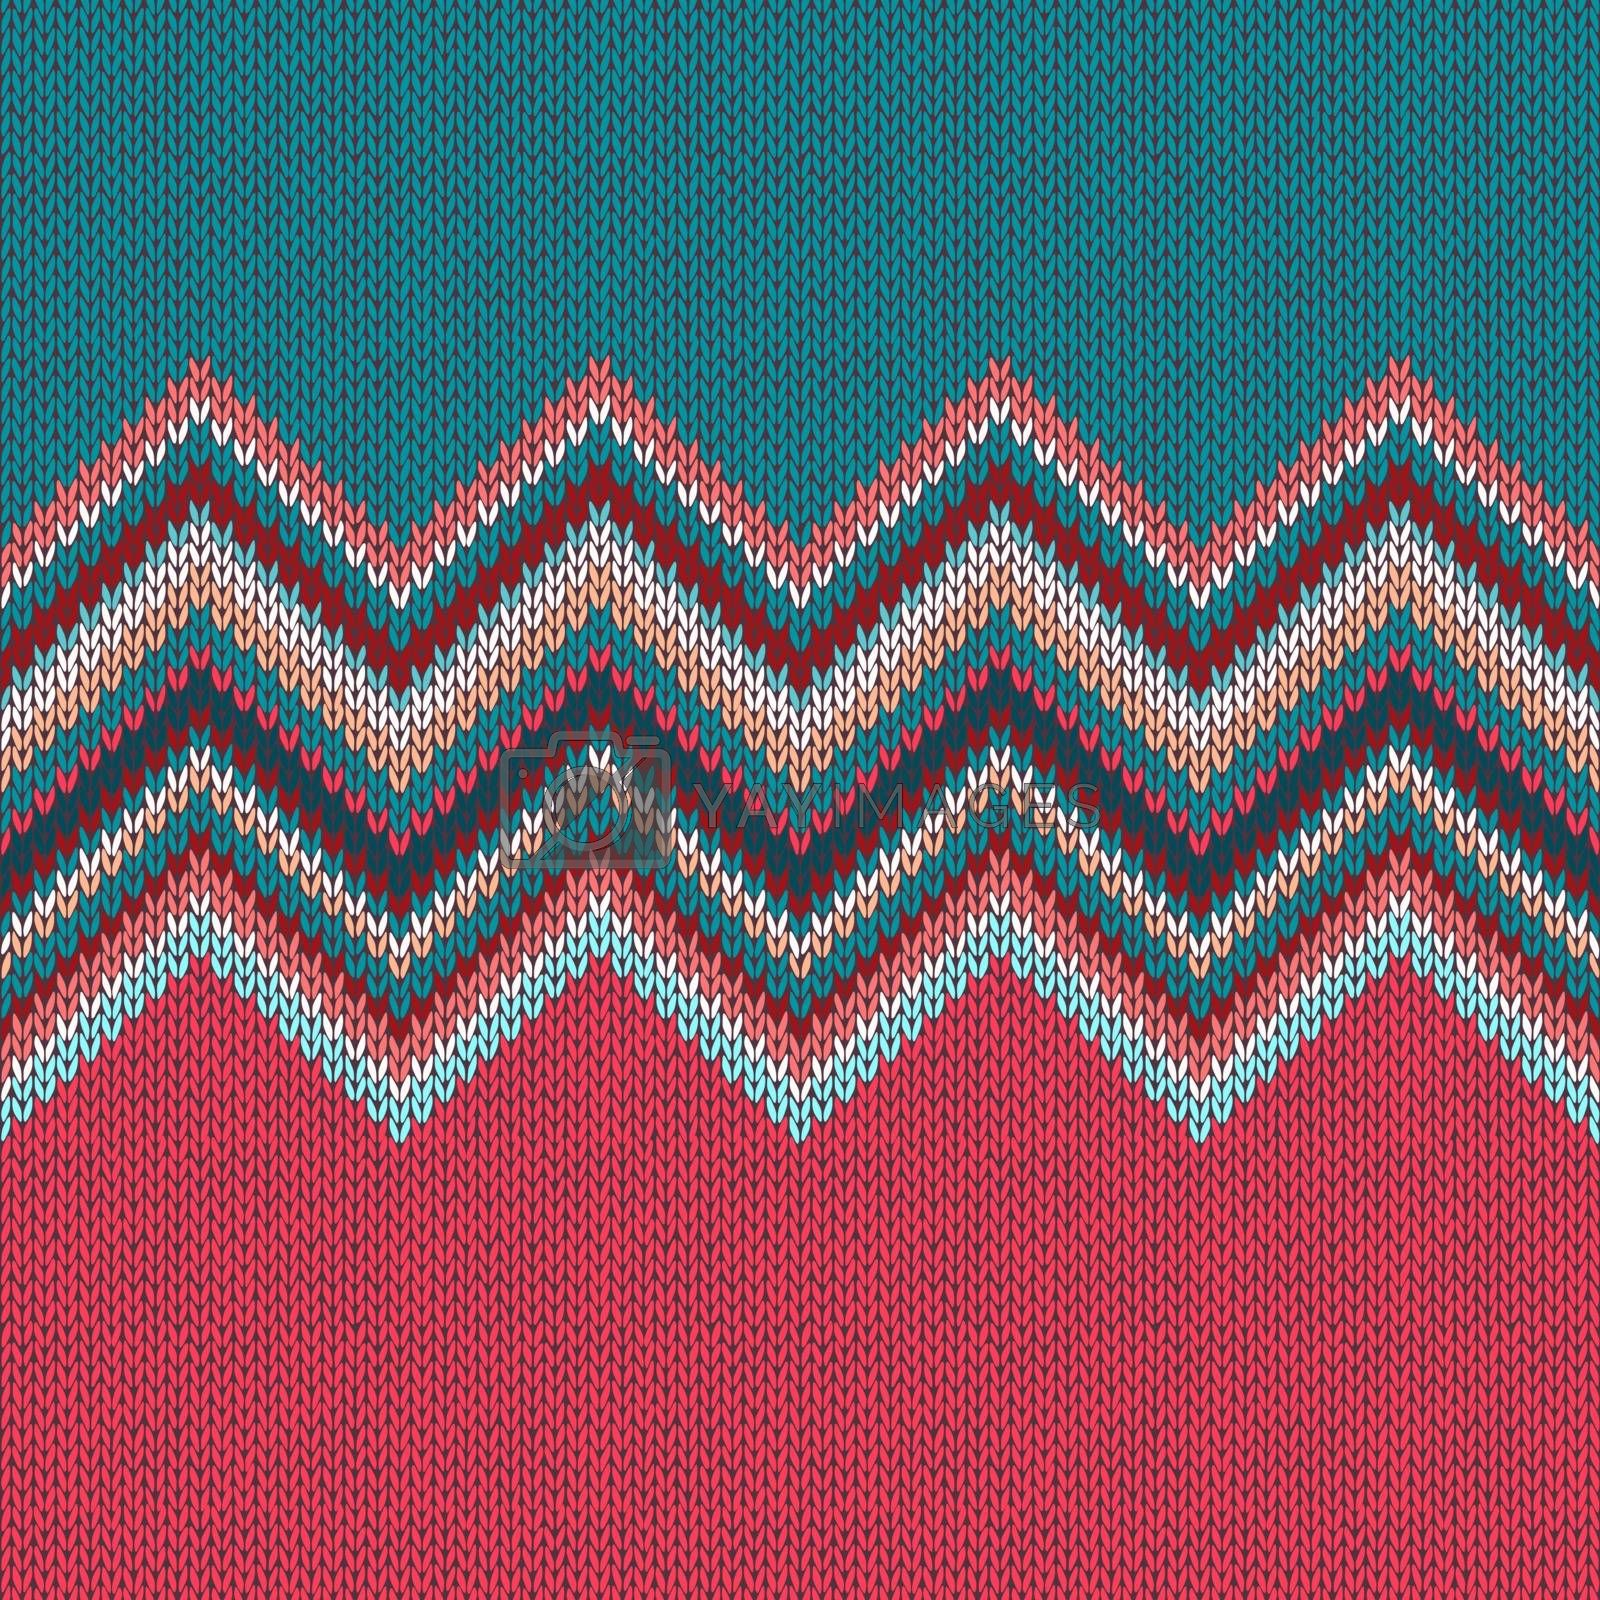 Knitted seamless pattern. Classic Knitwear Fashion consept background.